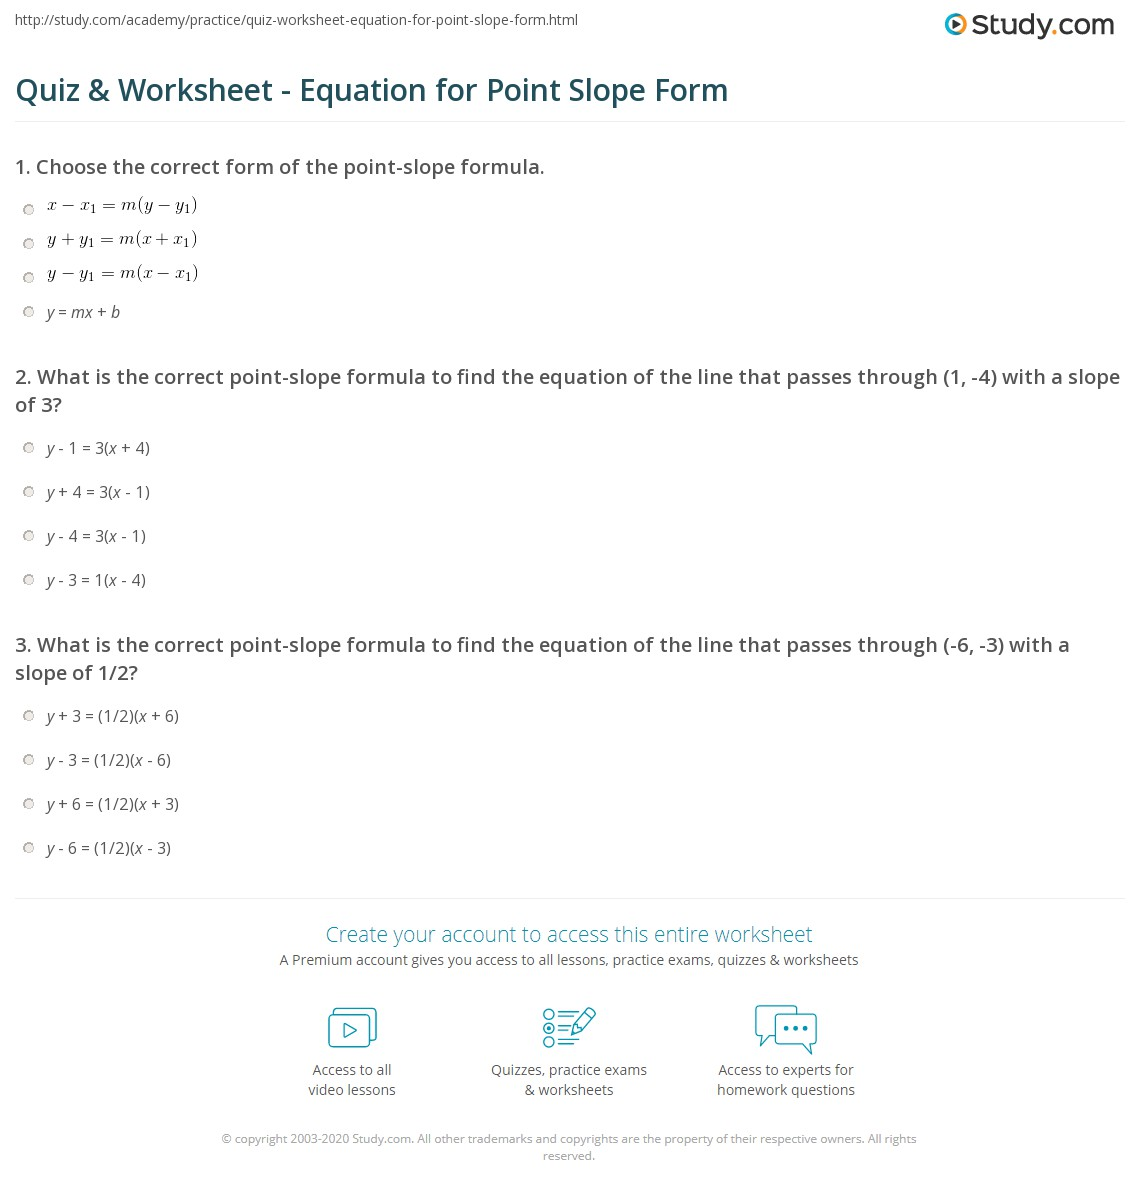 Quiz & Worksheet - Equation for Point Slope Form | Study.com